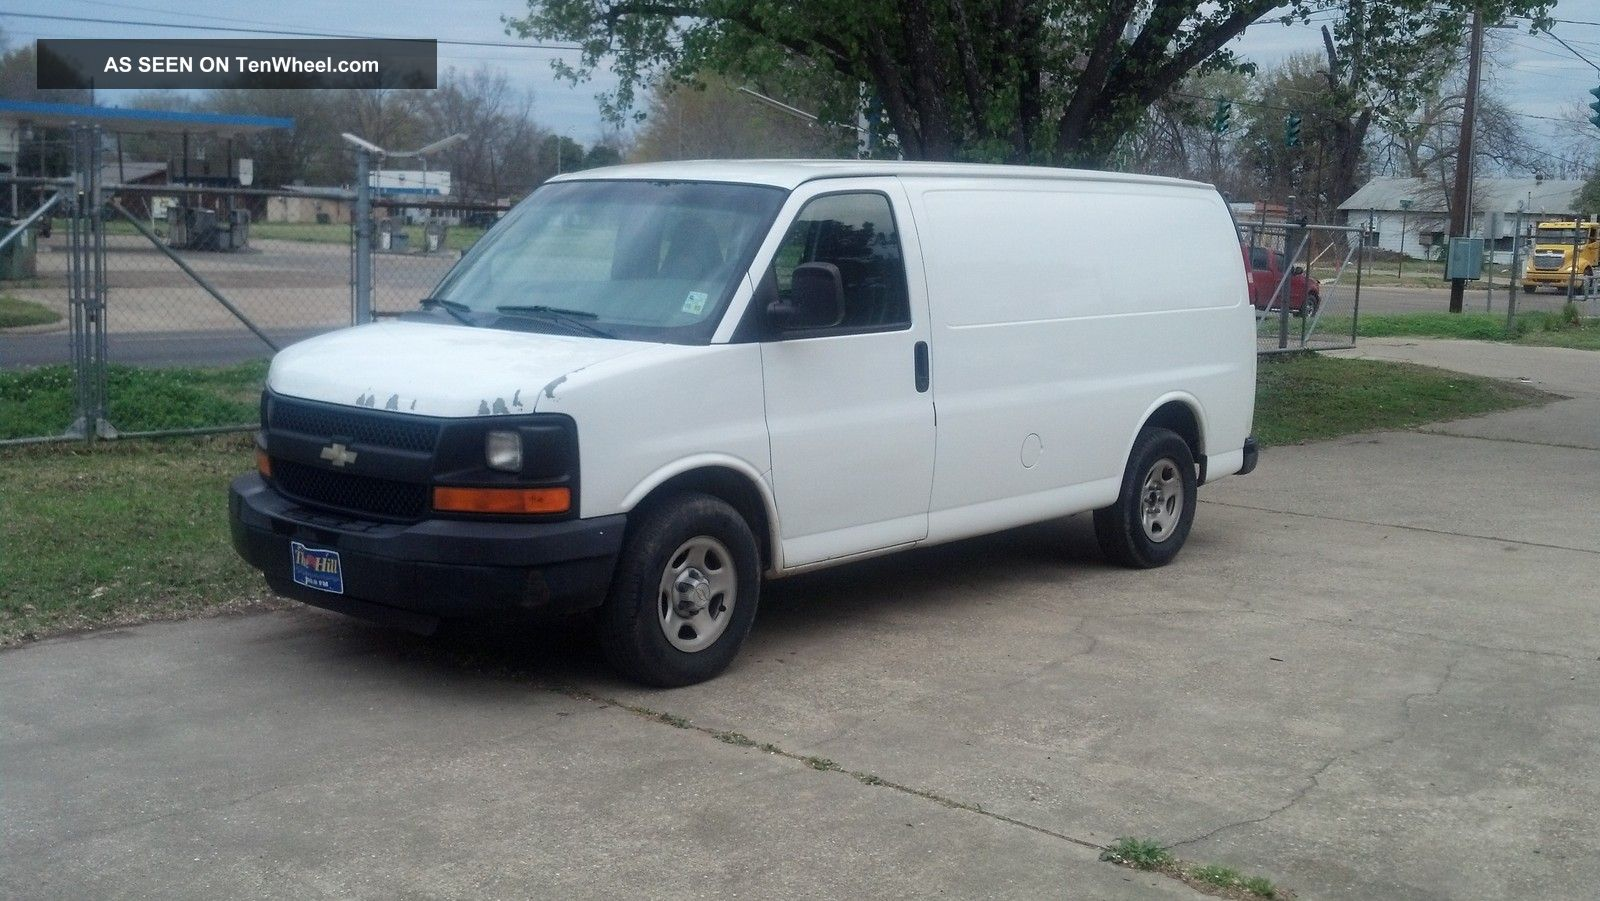 2005 chevrolet express 1500 fleet van cargo white chevy. Black Bedroom Furniture Sets. Home Design Ideas